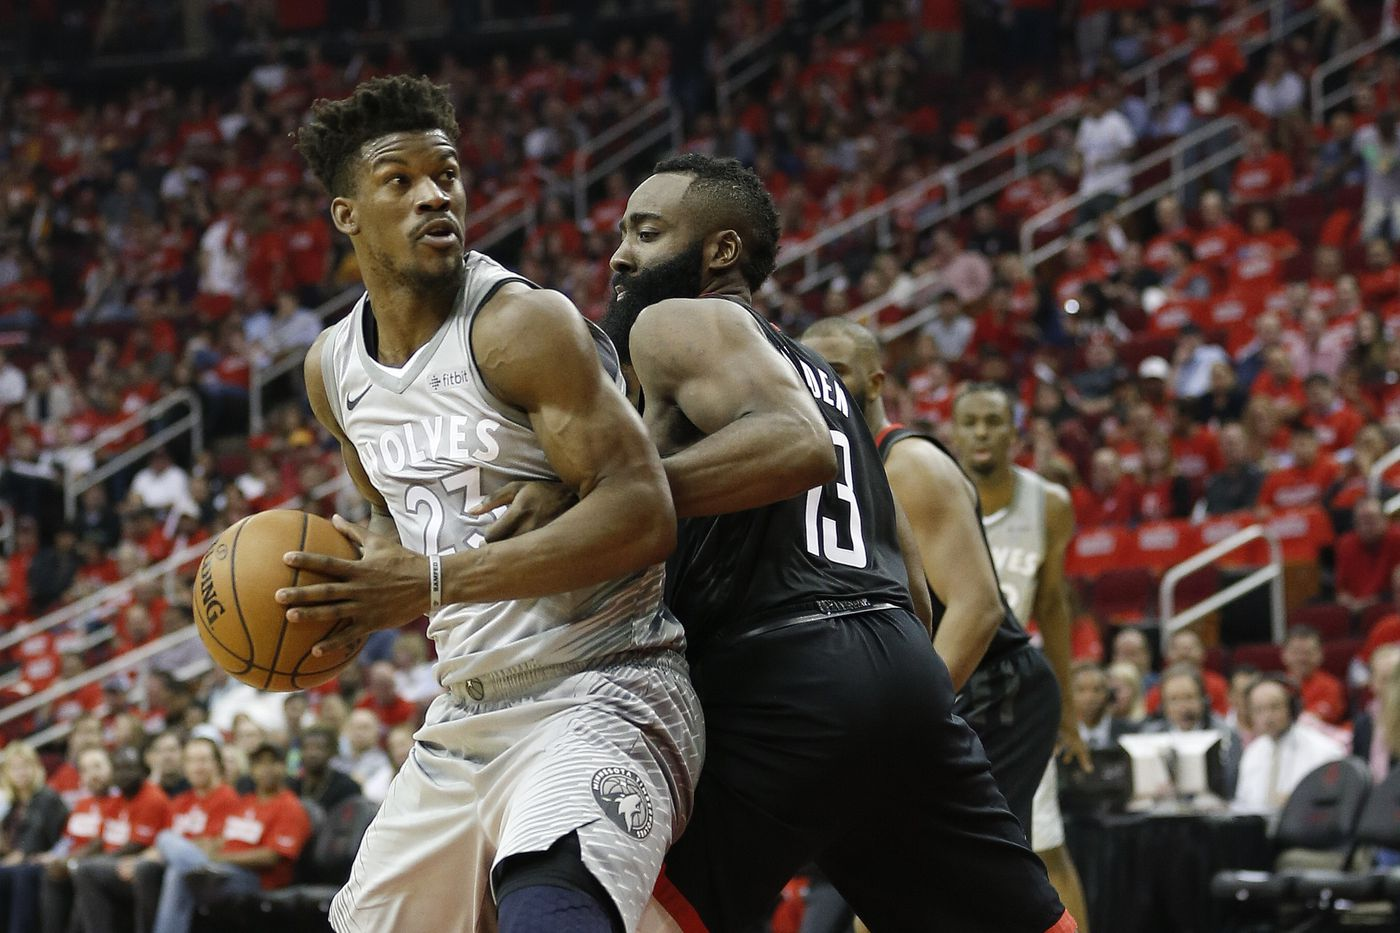 official photos 1a609 d09e6 Woj: Houston Rockets interested in trading for Jimmy Butler ...